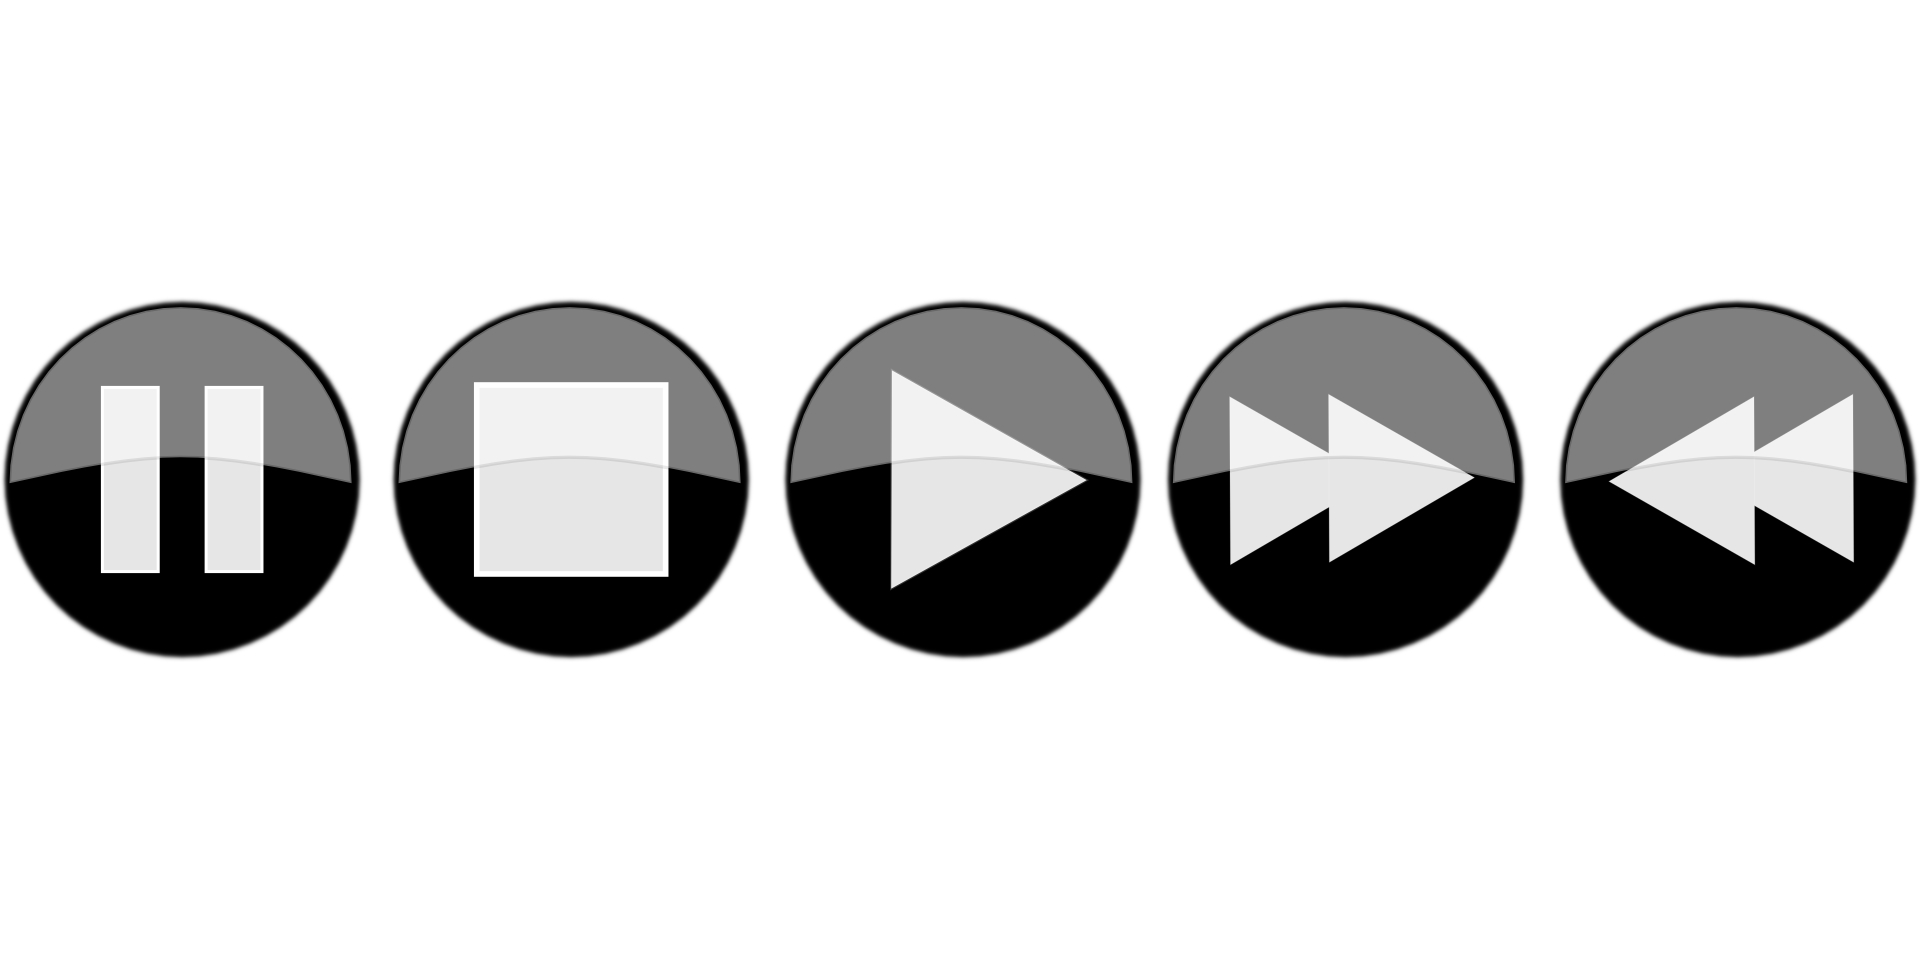 11 Media Player Button Icons PSD Pics Images - Free Media